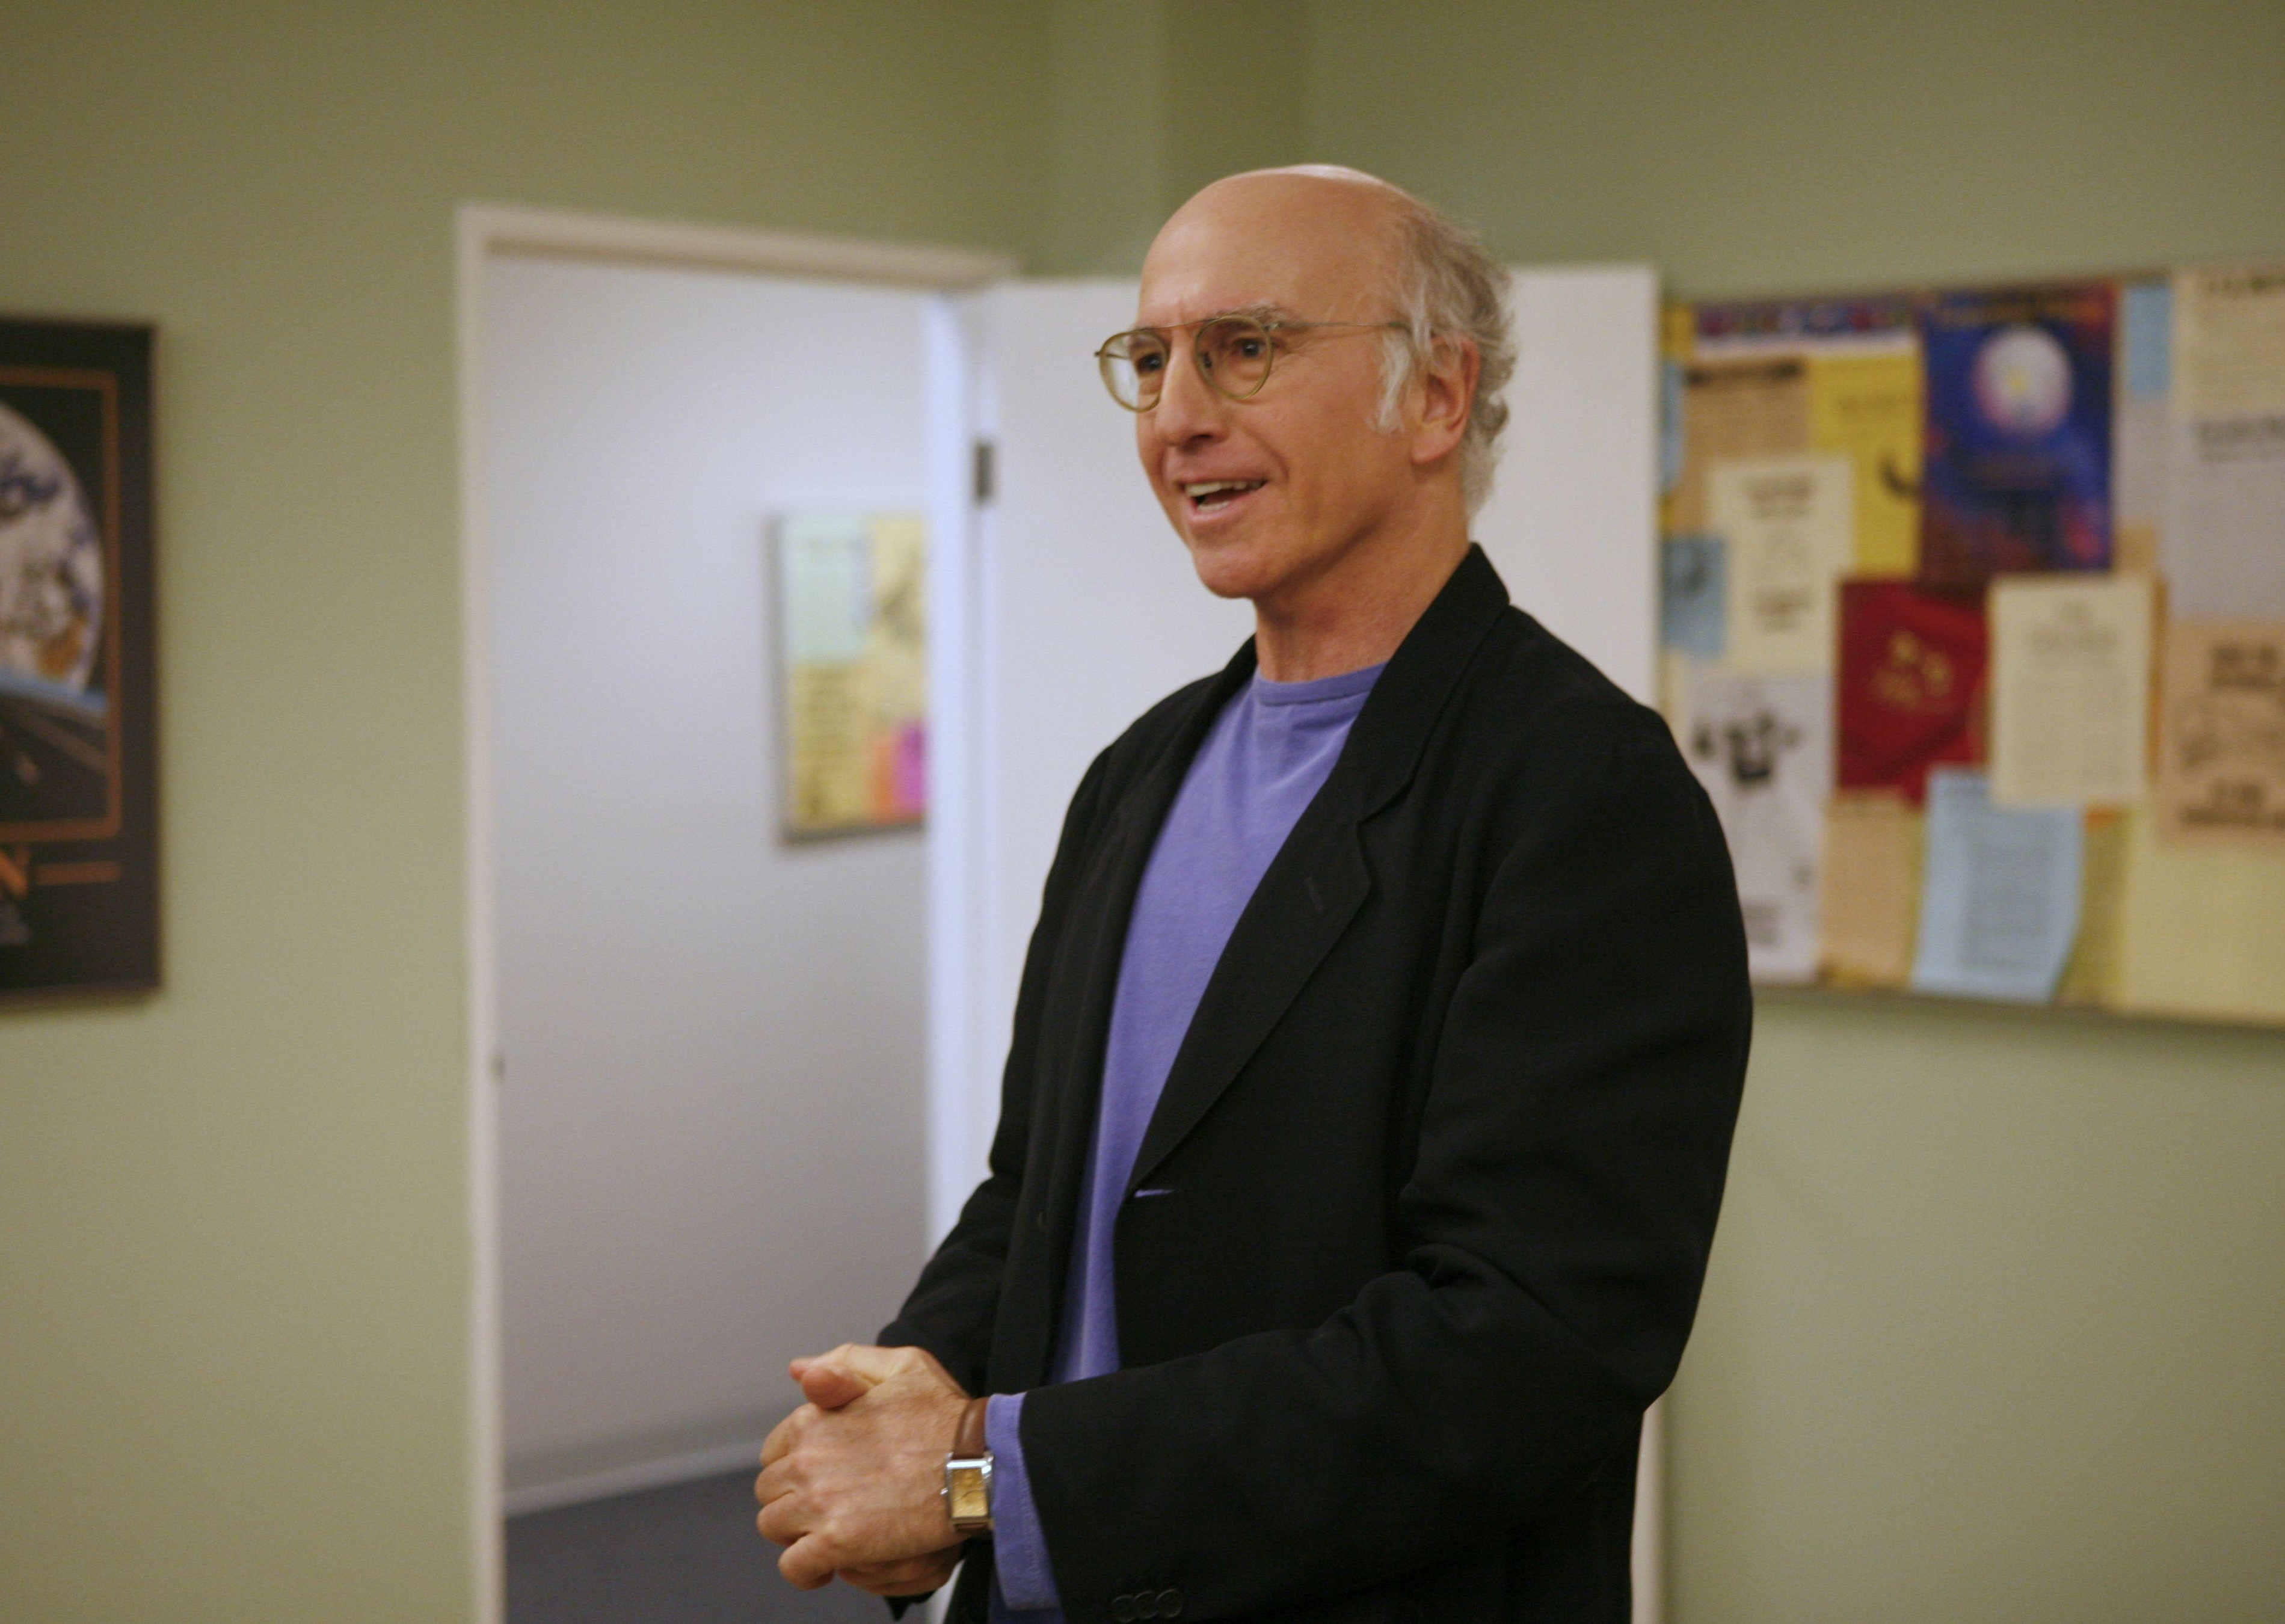 curb-your-enthusiasm_9MdOdk